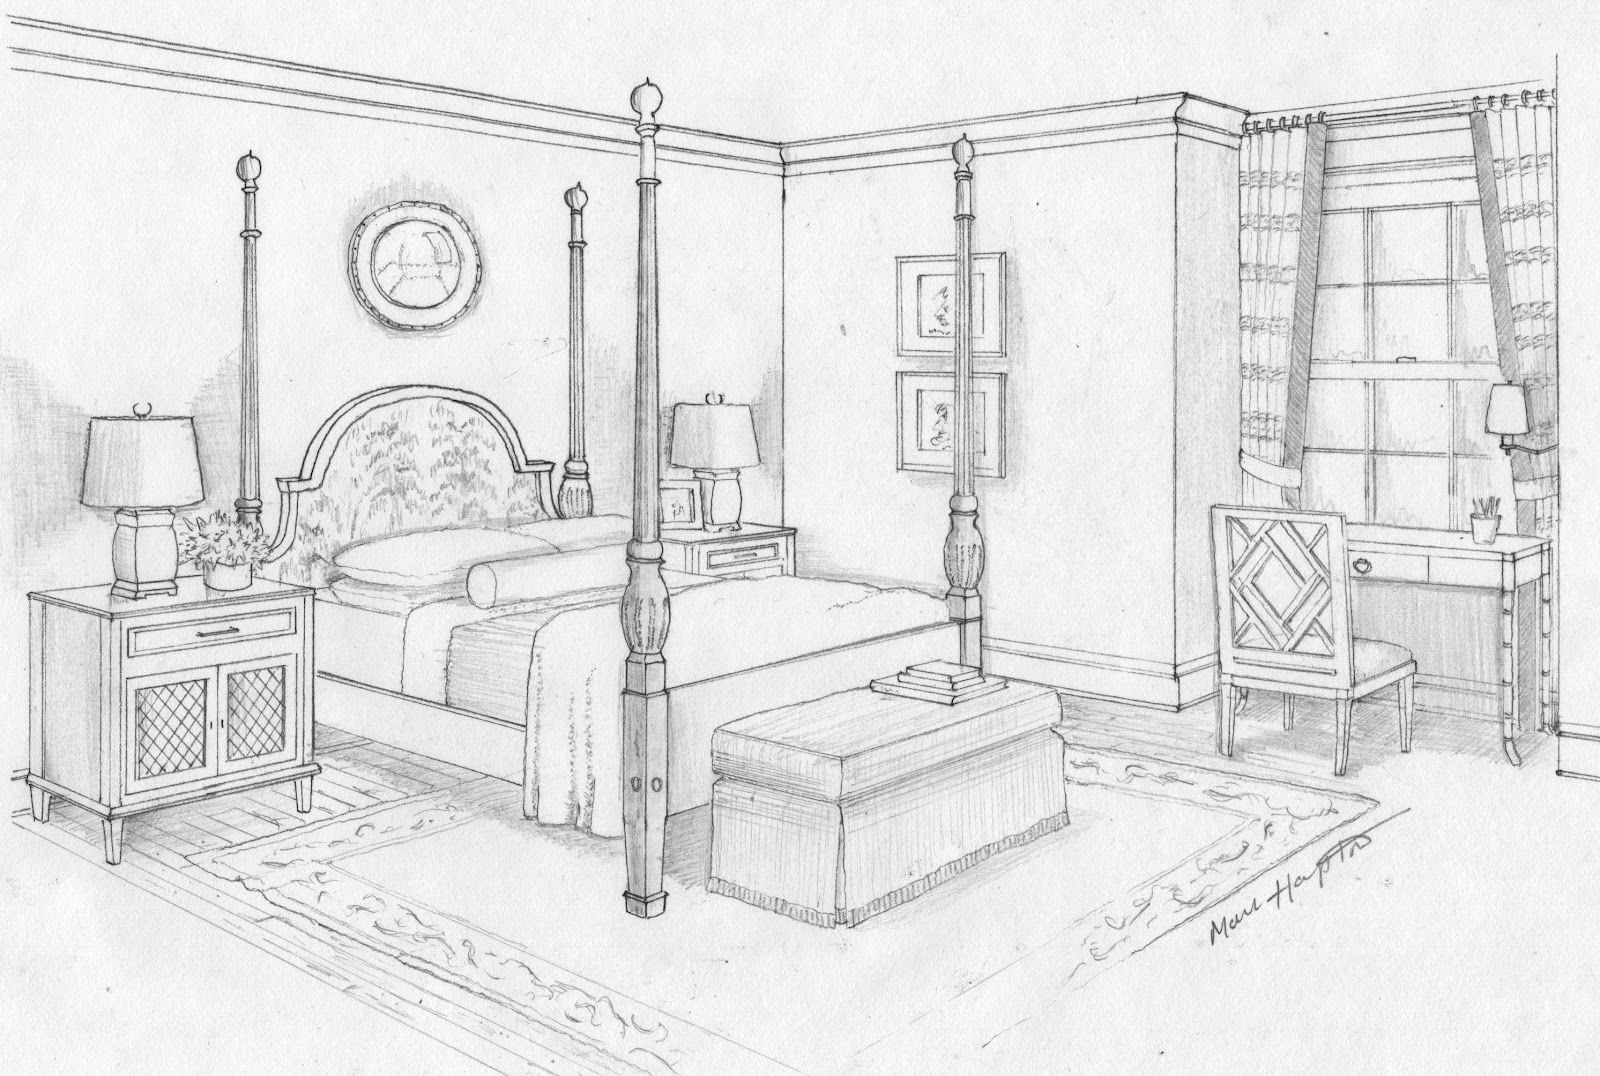 rooms dream bedroom perspective drawing drawing designs manga drawing